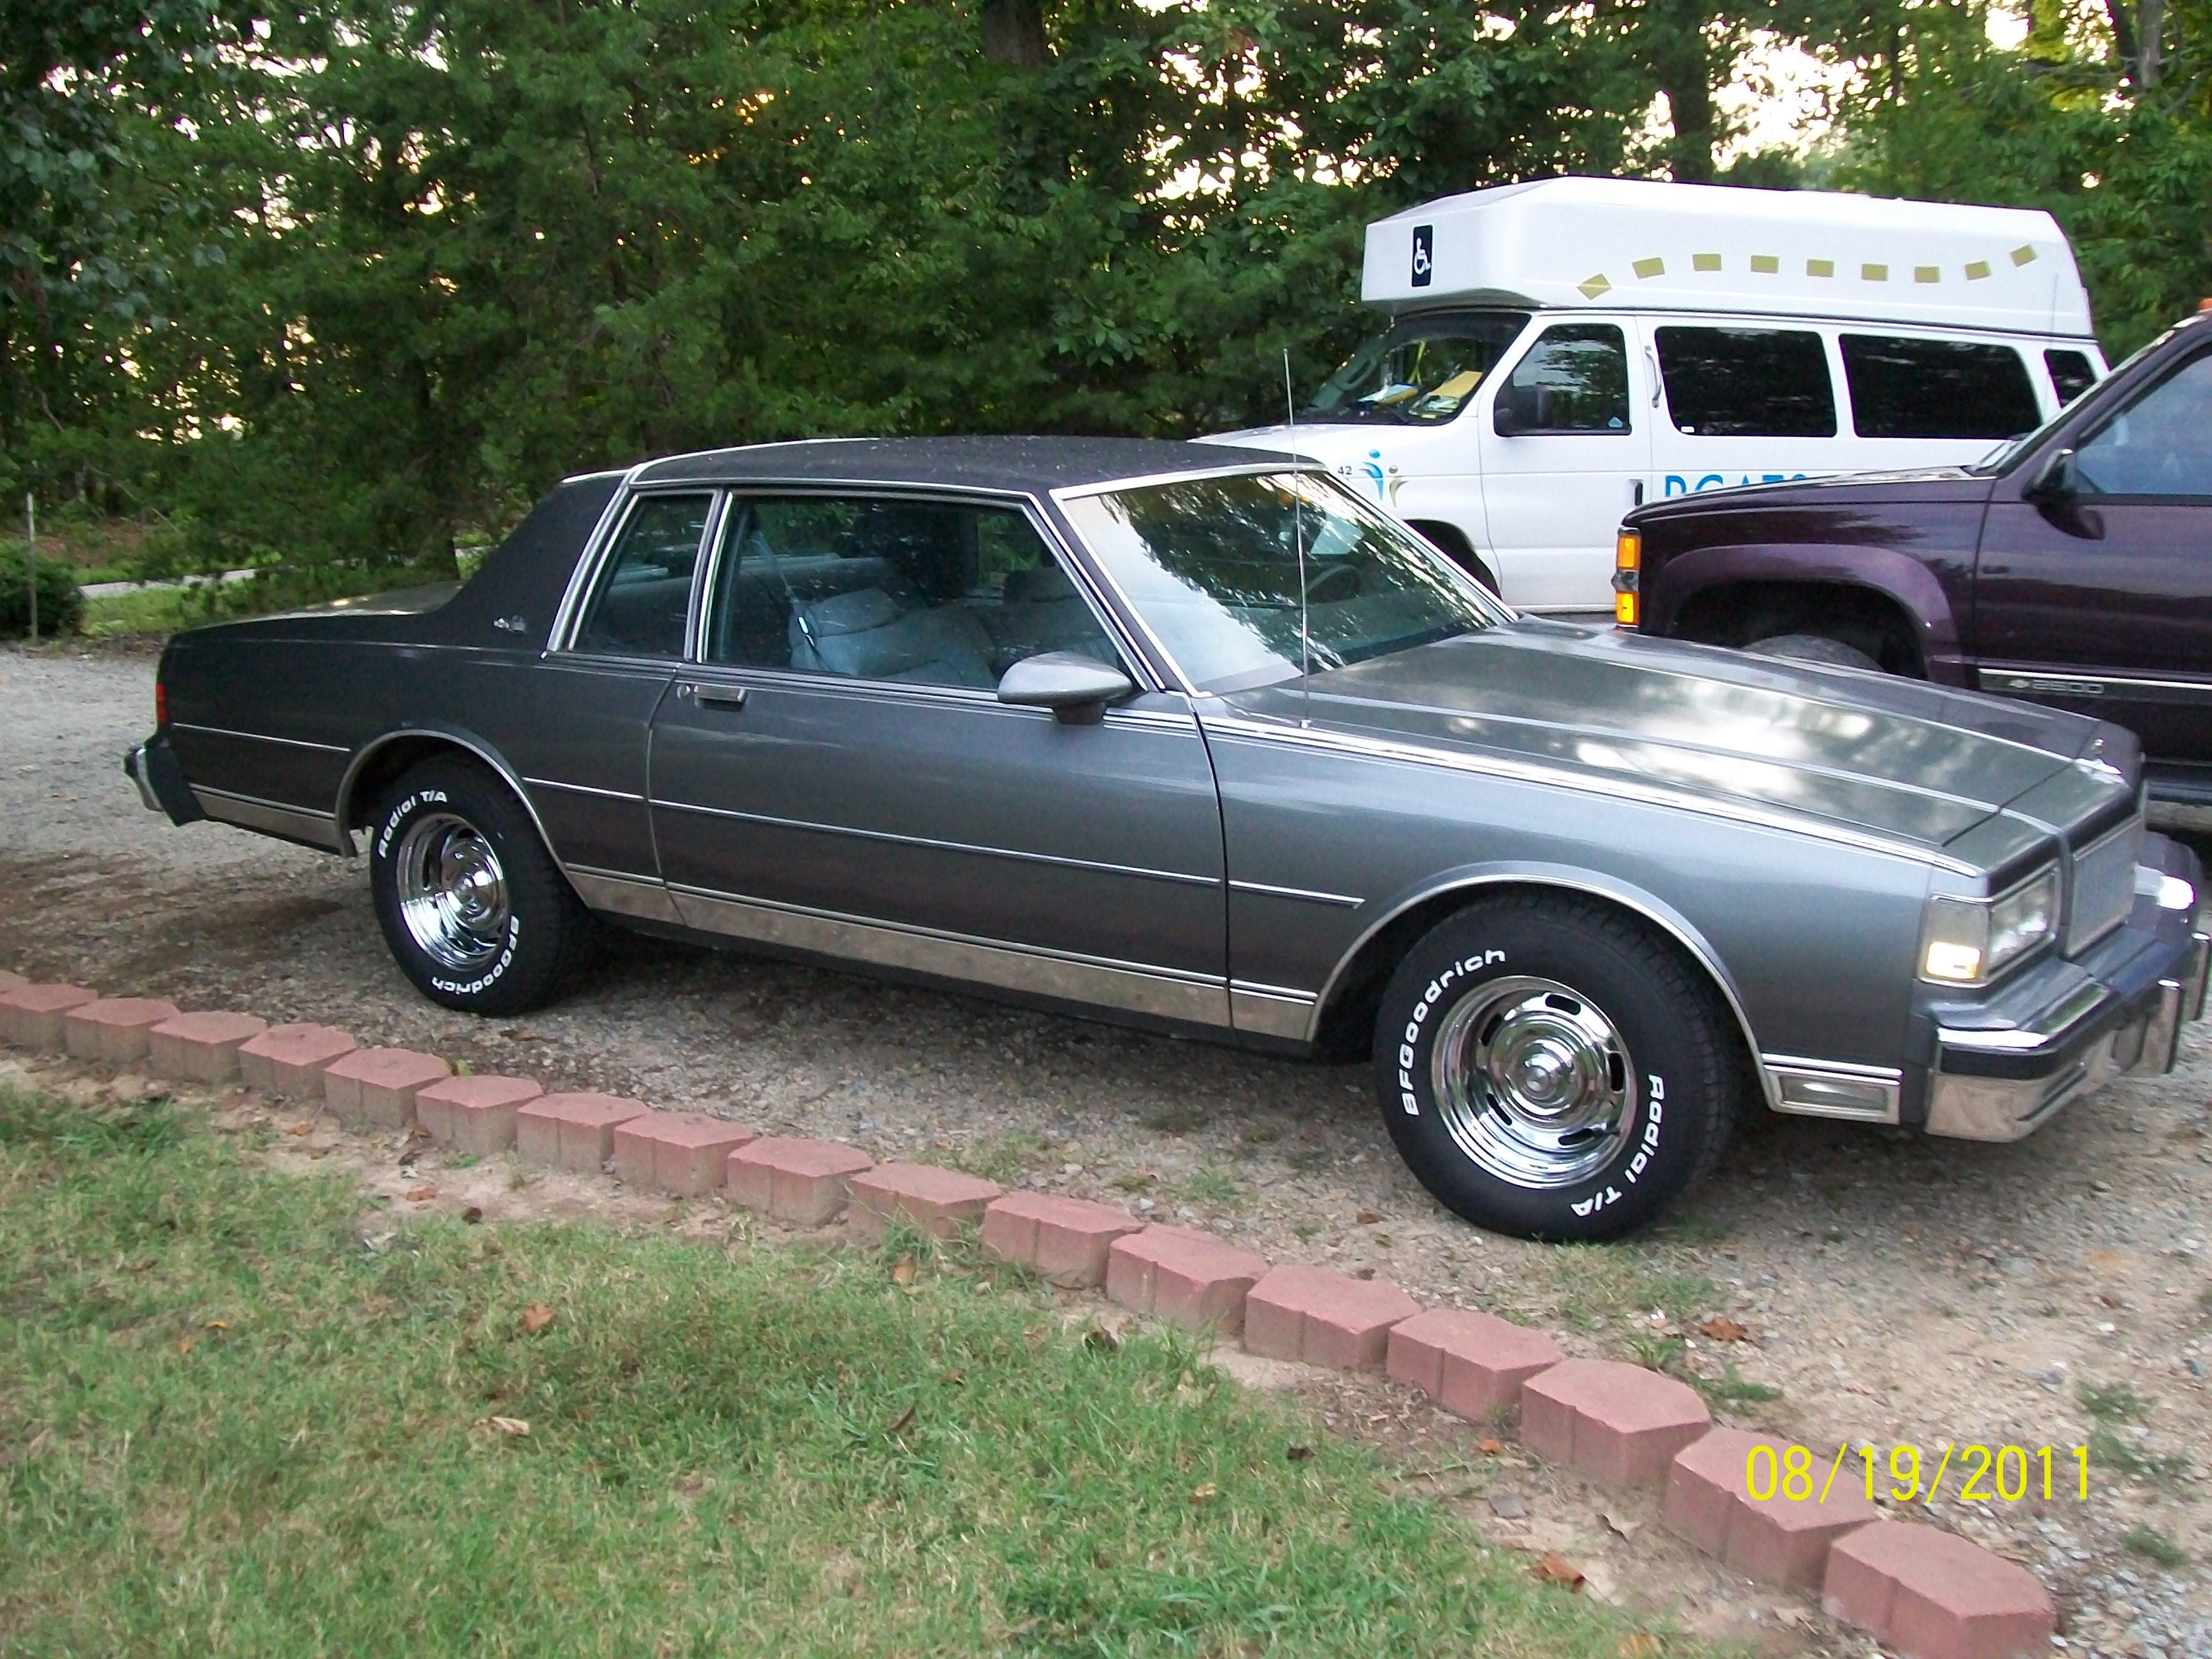 jaywill148 1987 Chevrolet Caprice